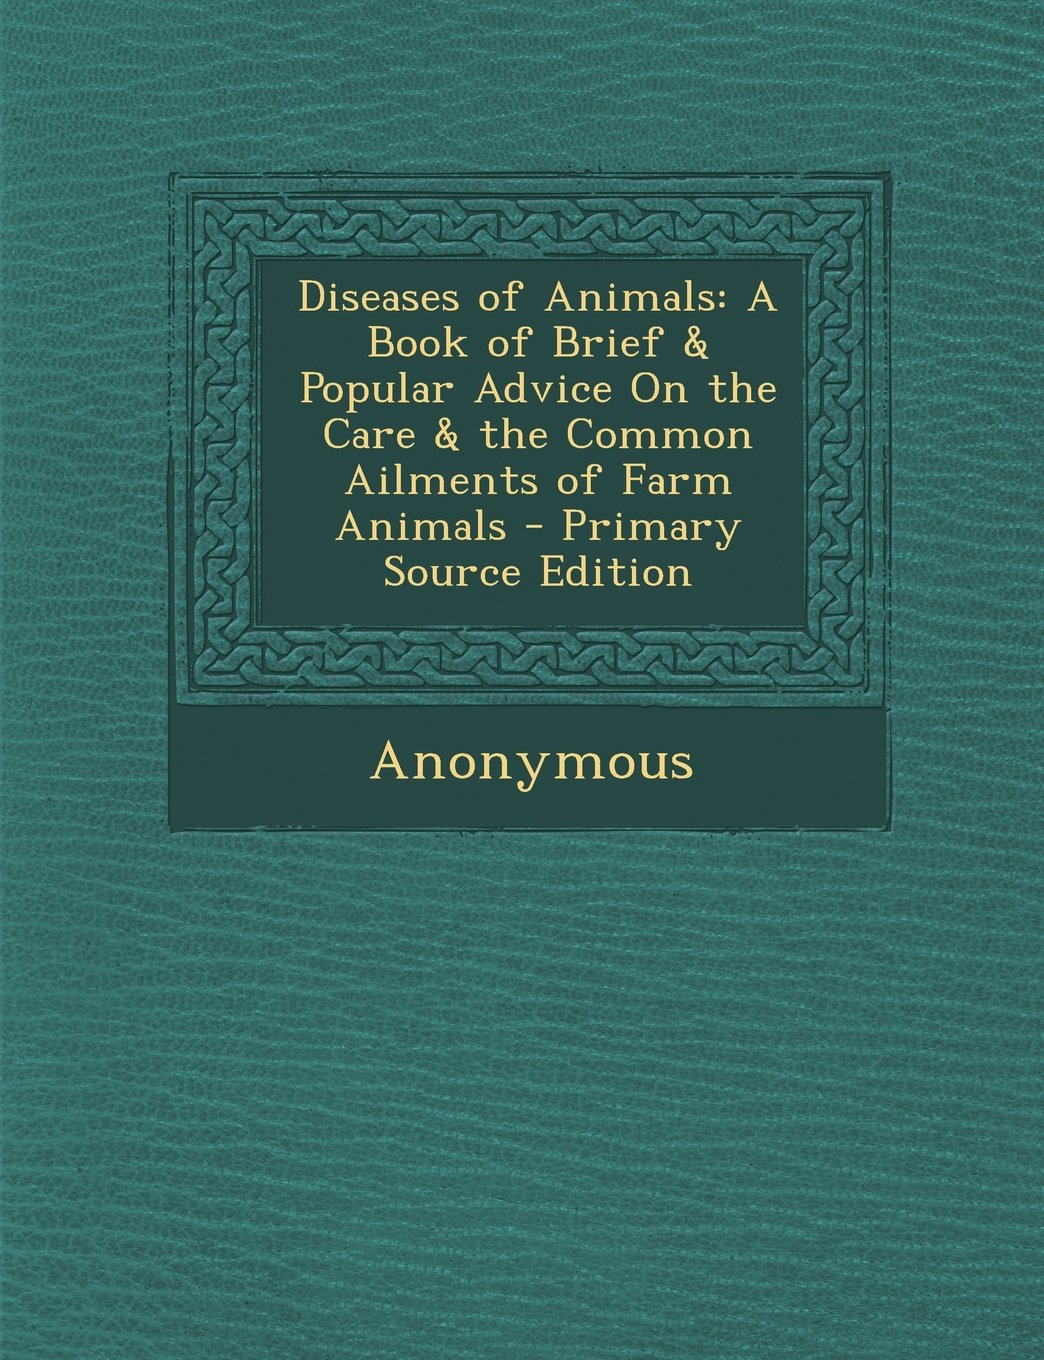 Diseases of Animals: A Book of Brief & Popular Advice on the Care & the Common Ailments of Farm Animals - Primary Source Edition PDF